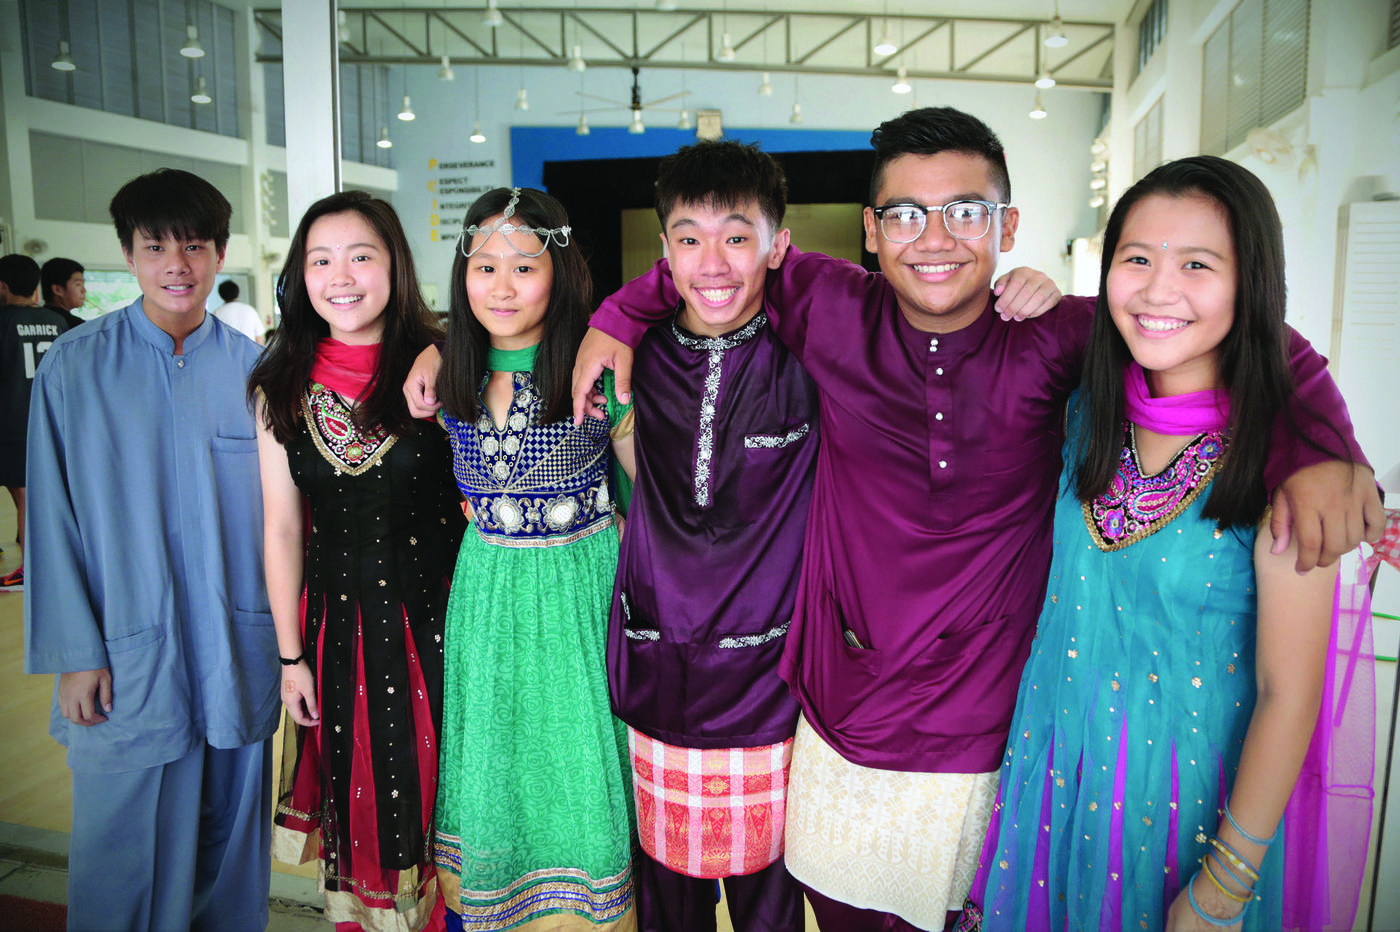 Singapore is a multiracial and multicultural society where people of different races and religions live harmoniously.